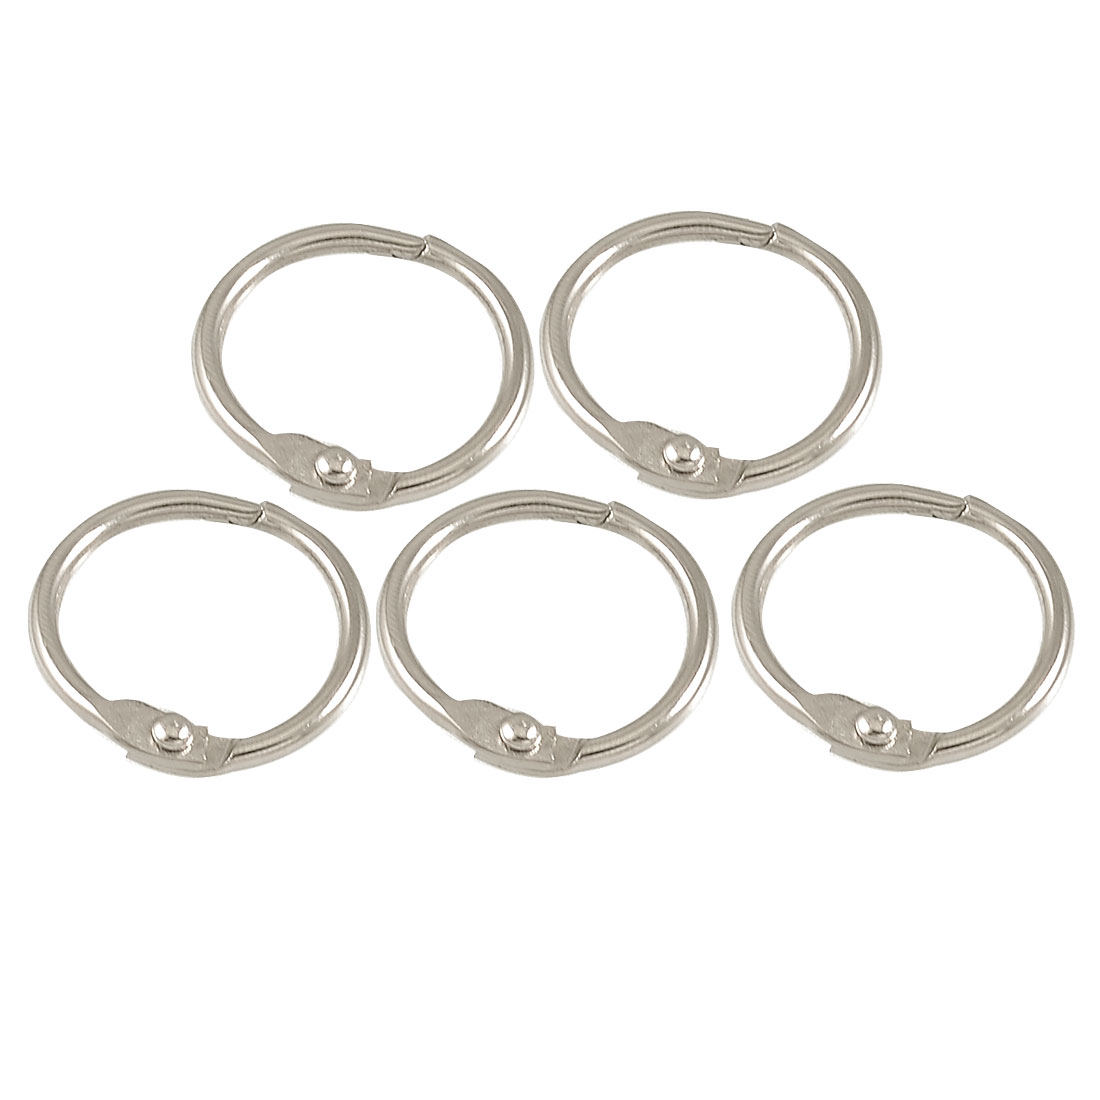 "5 Pcs Silver Tone Metal 1"" Loose Leaf Bundle Book Rings Keyrings"